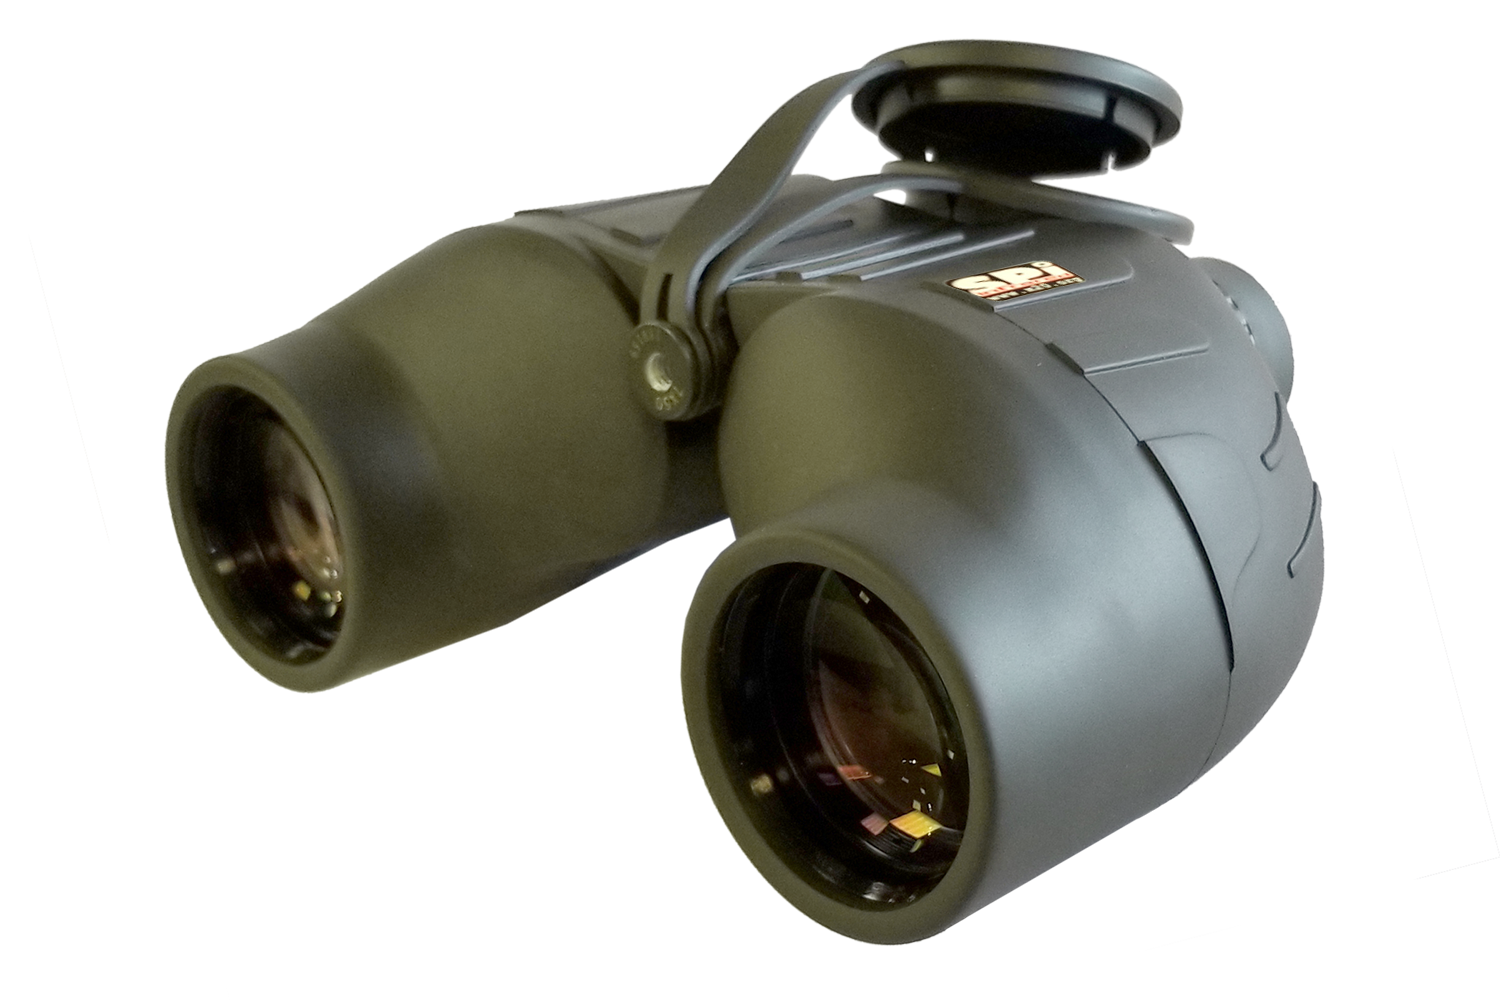 day optics binocular durable form fitting